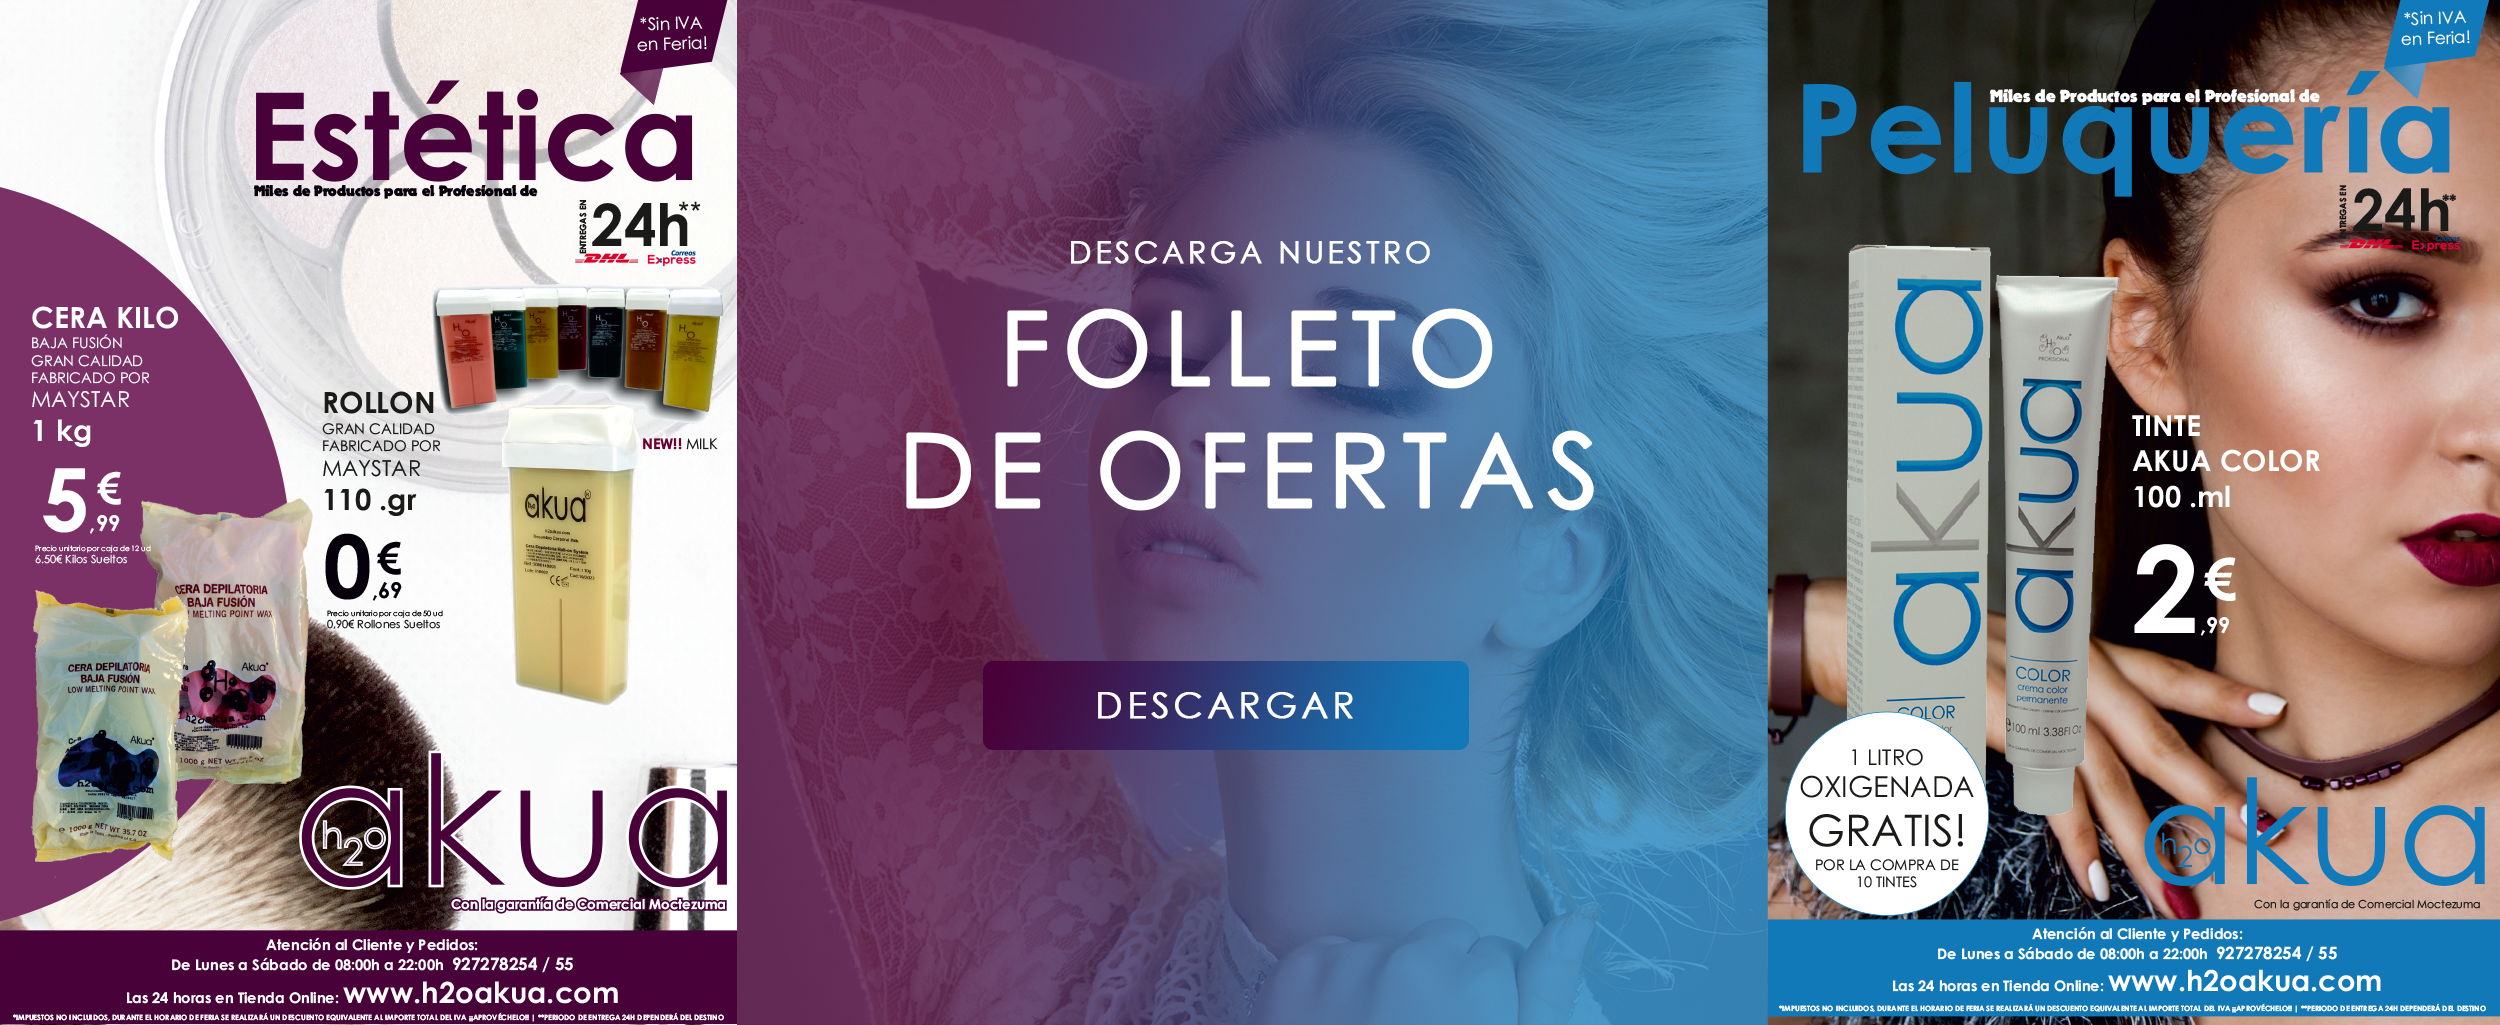 Folleto Ofertas H2oAkua